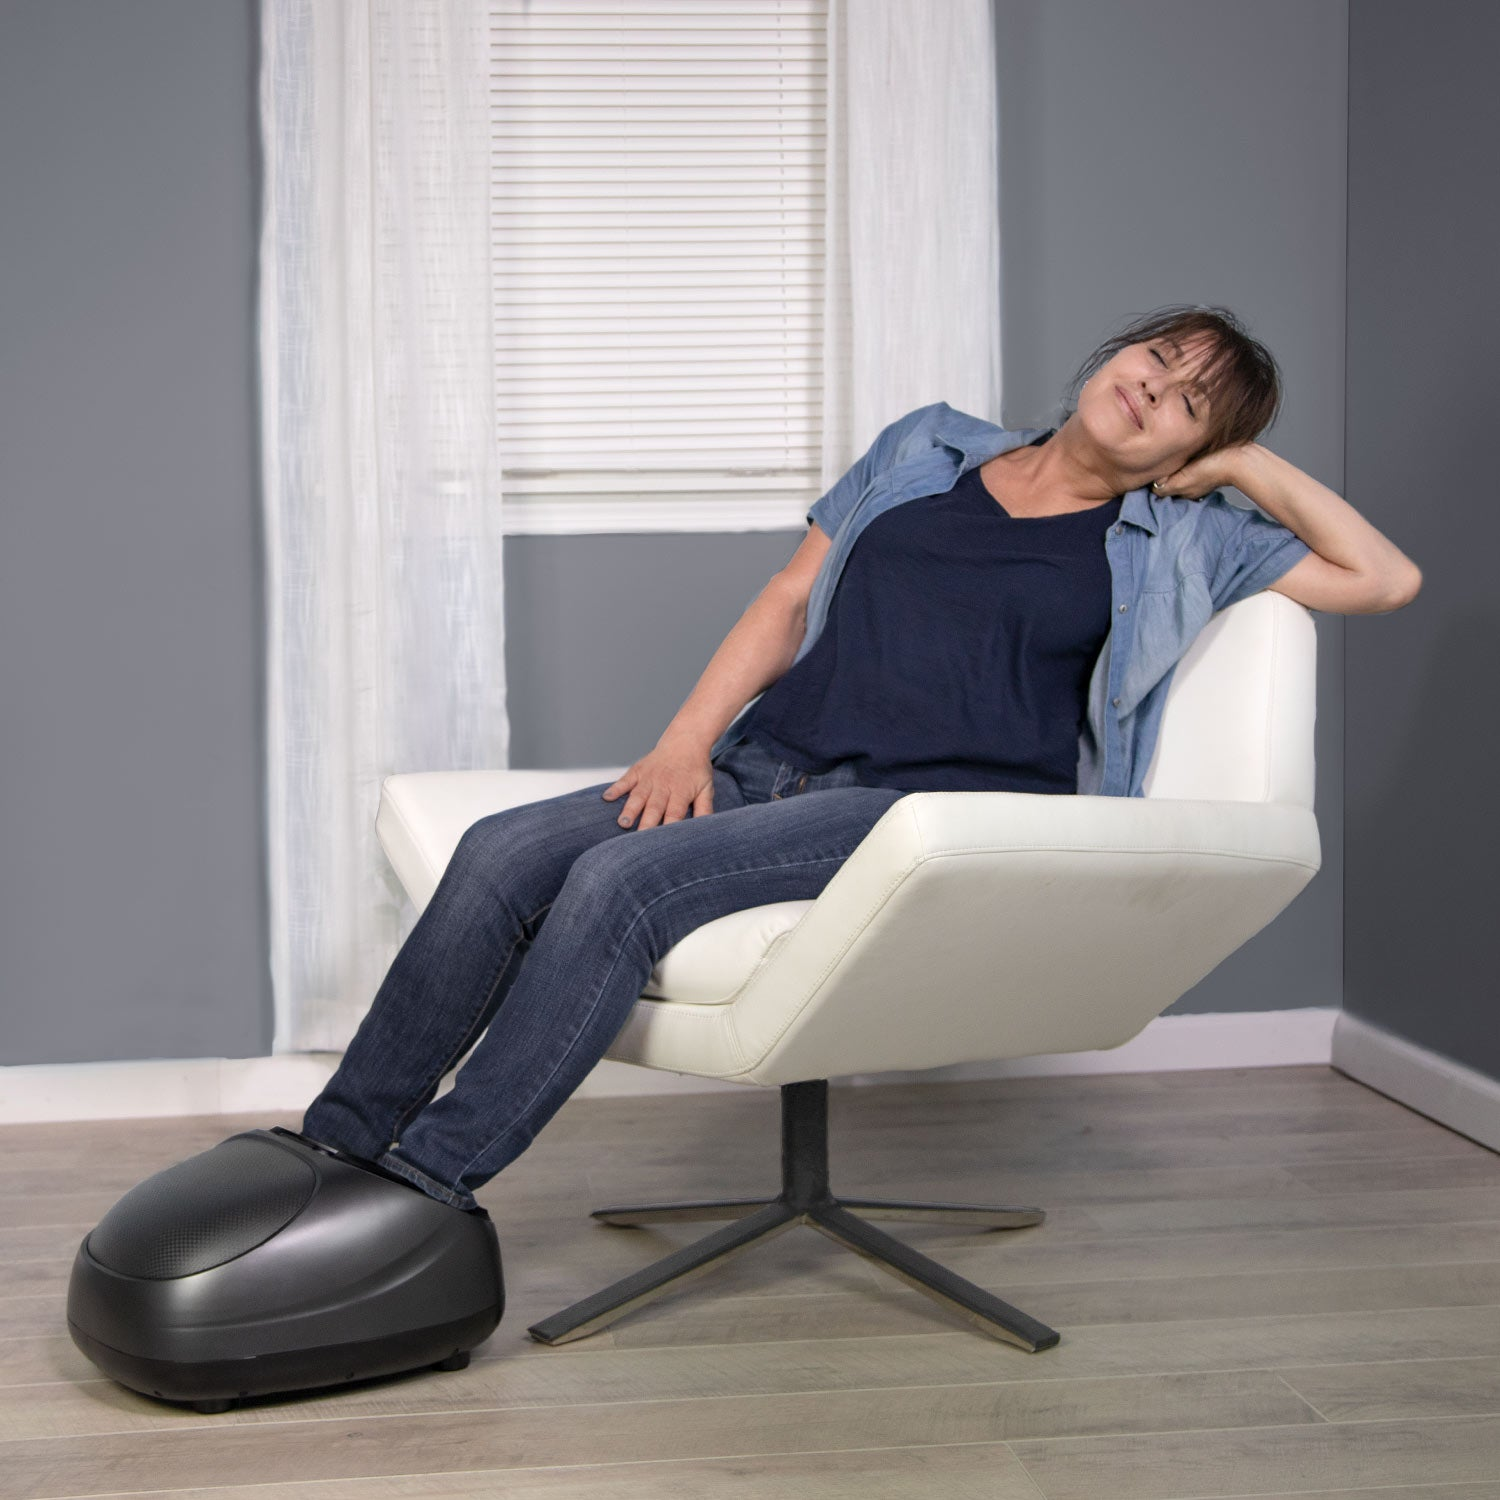 truShiatsu™PRO Foot Massager with Heat